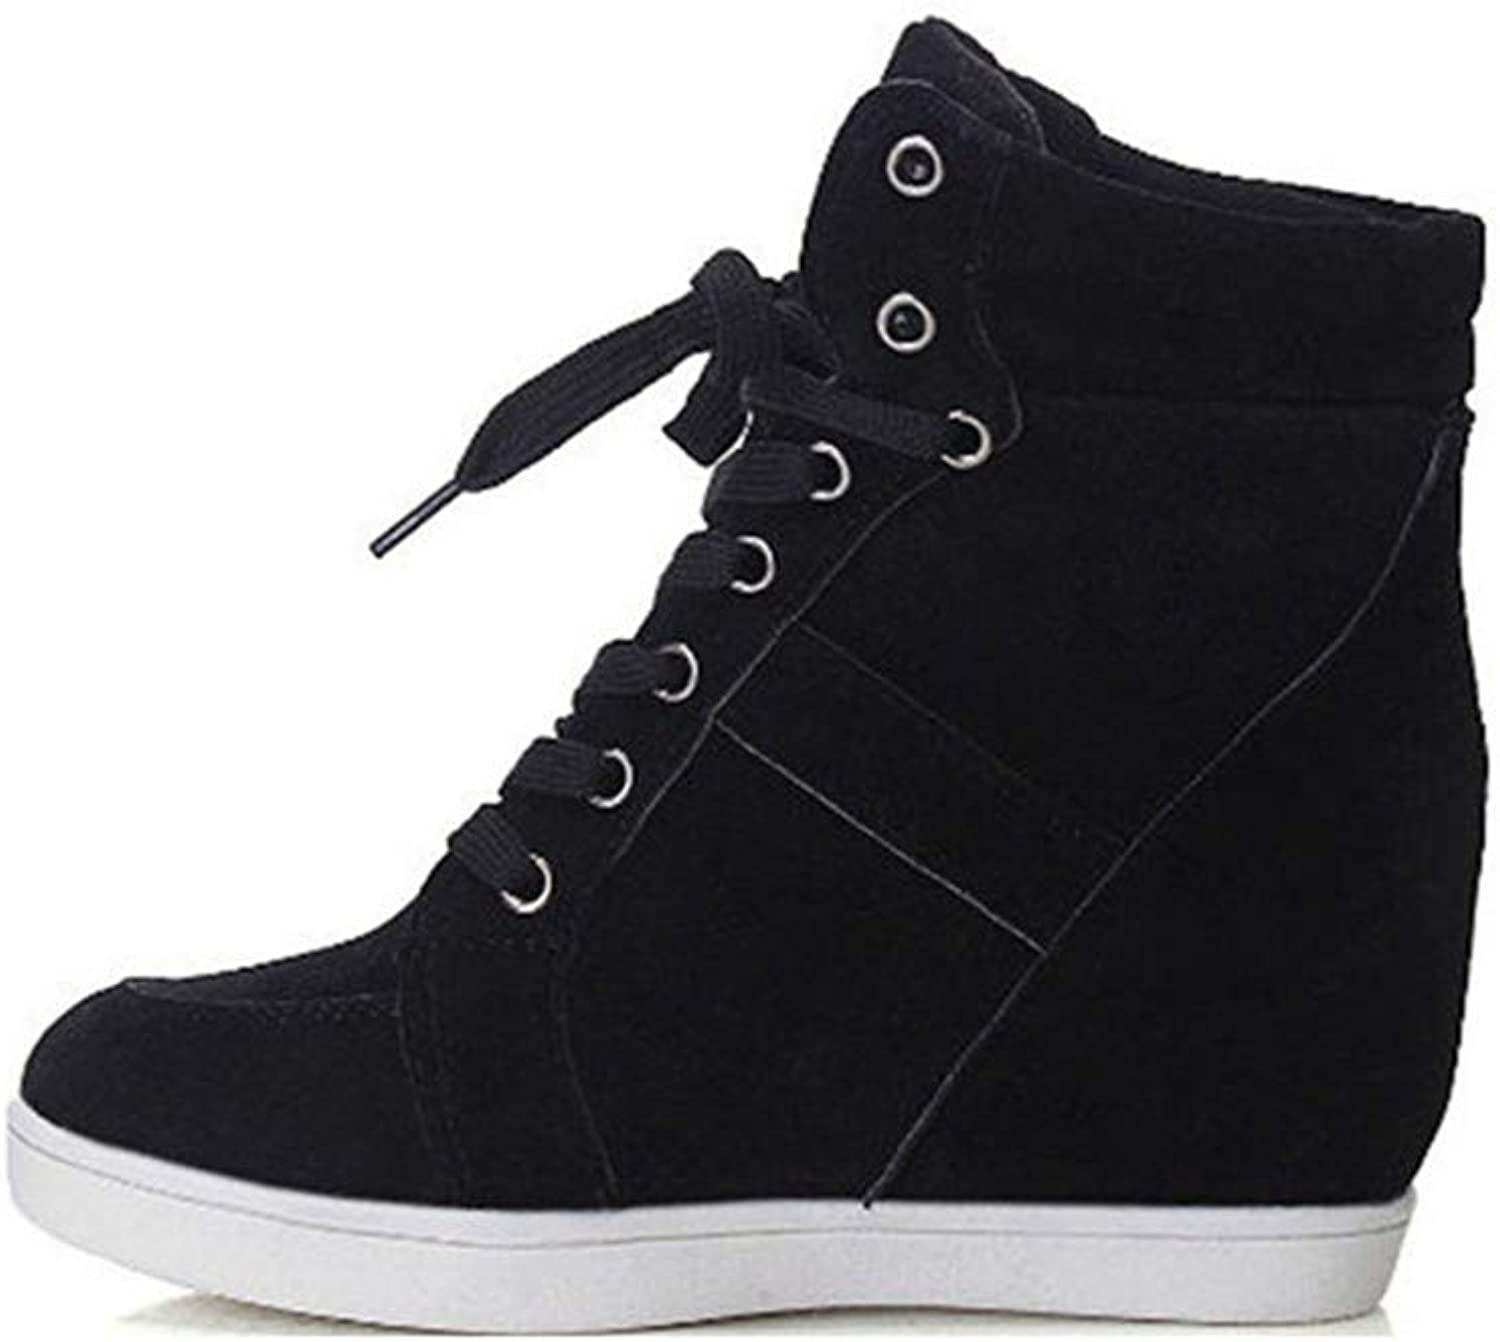 Women Height Increasing Platform Sneakers Wedges Casual shoes Woman Lace-up High Top Genuine Suede shoes Black 7 M US